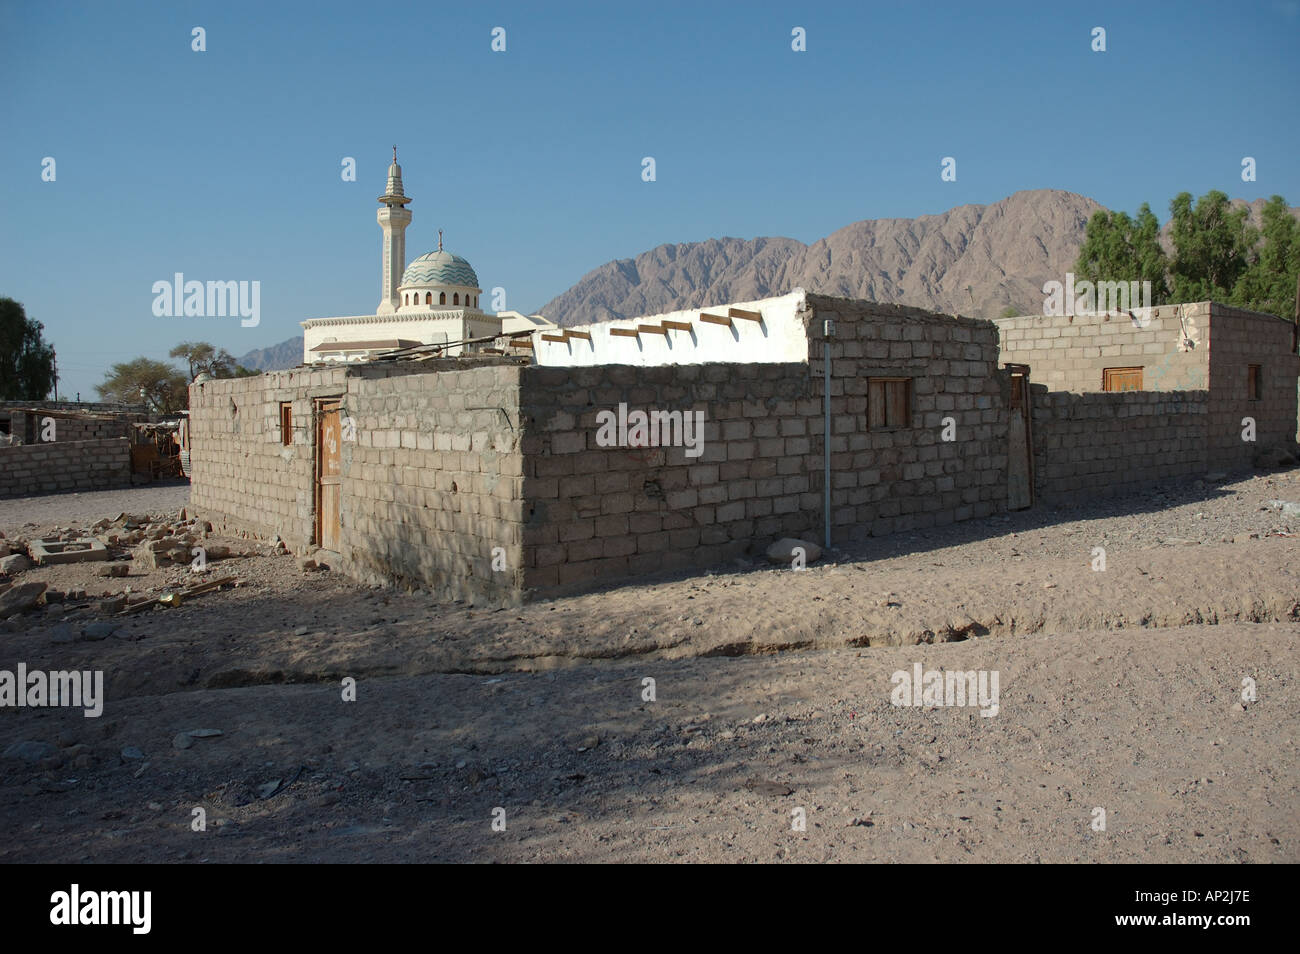 A Bedouin settlement showing mosque and minaret near Nuweiba in the Sinai region of Egypt - Stock Image